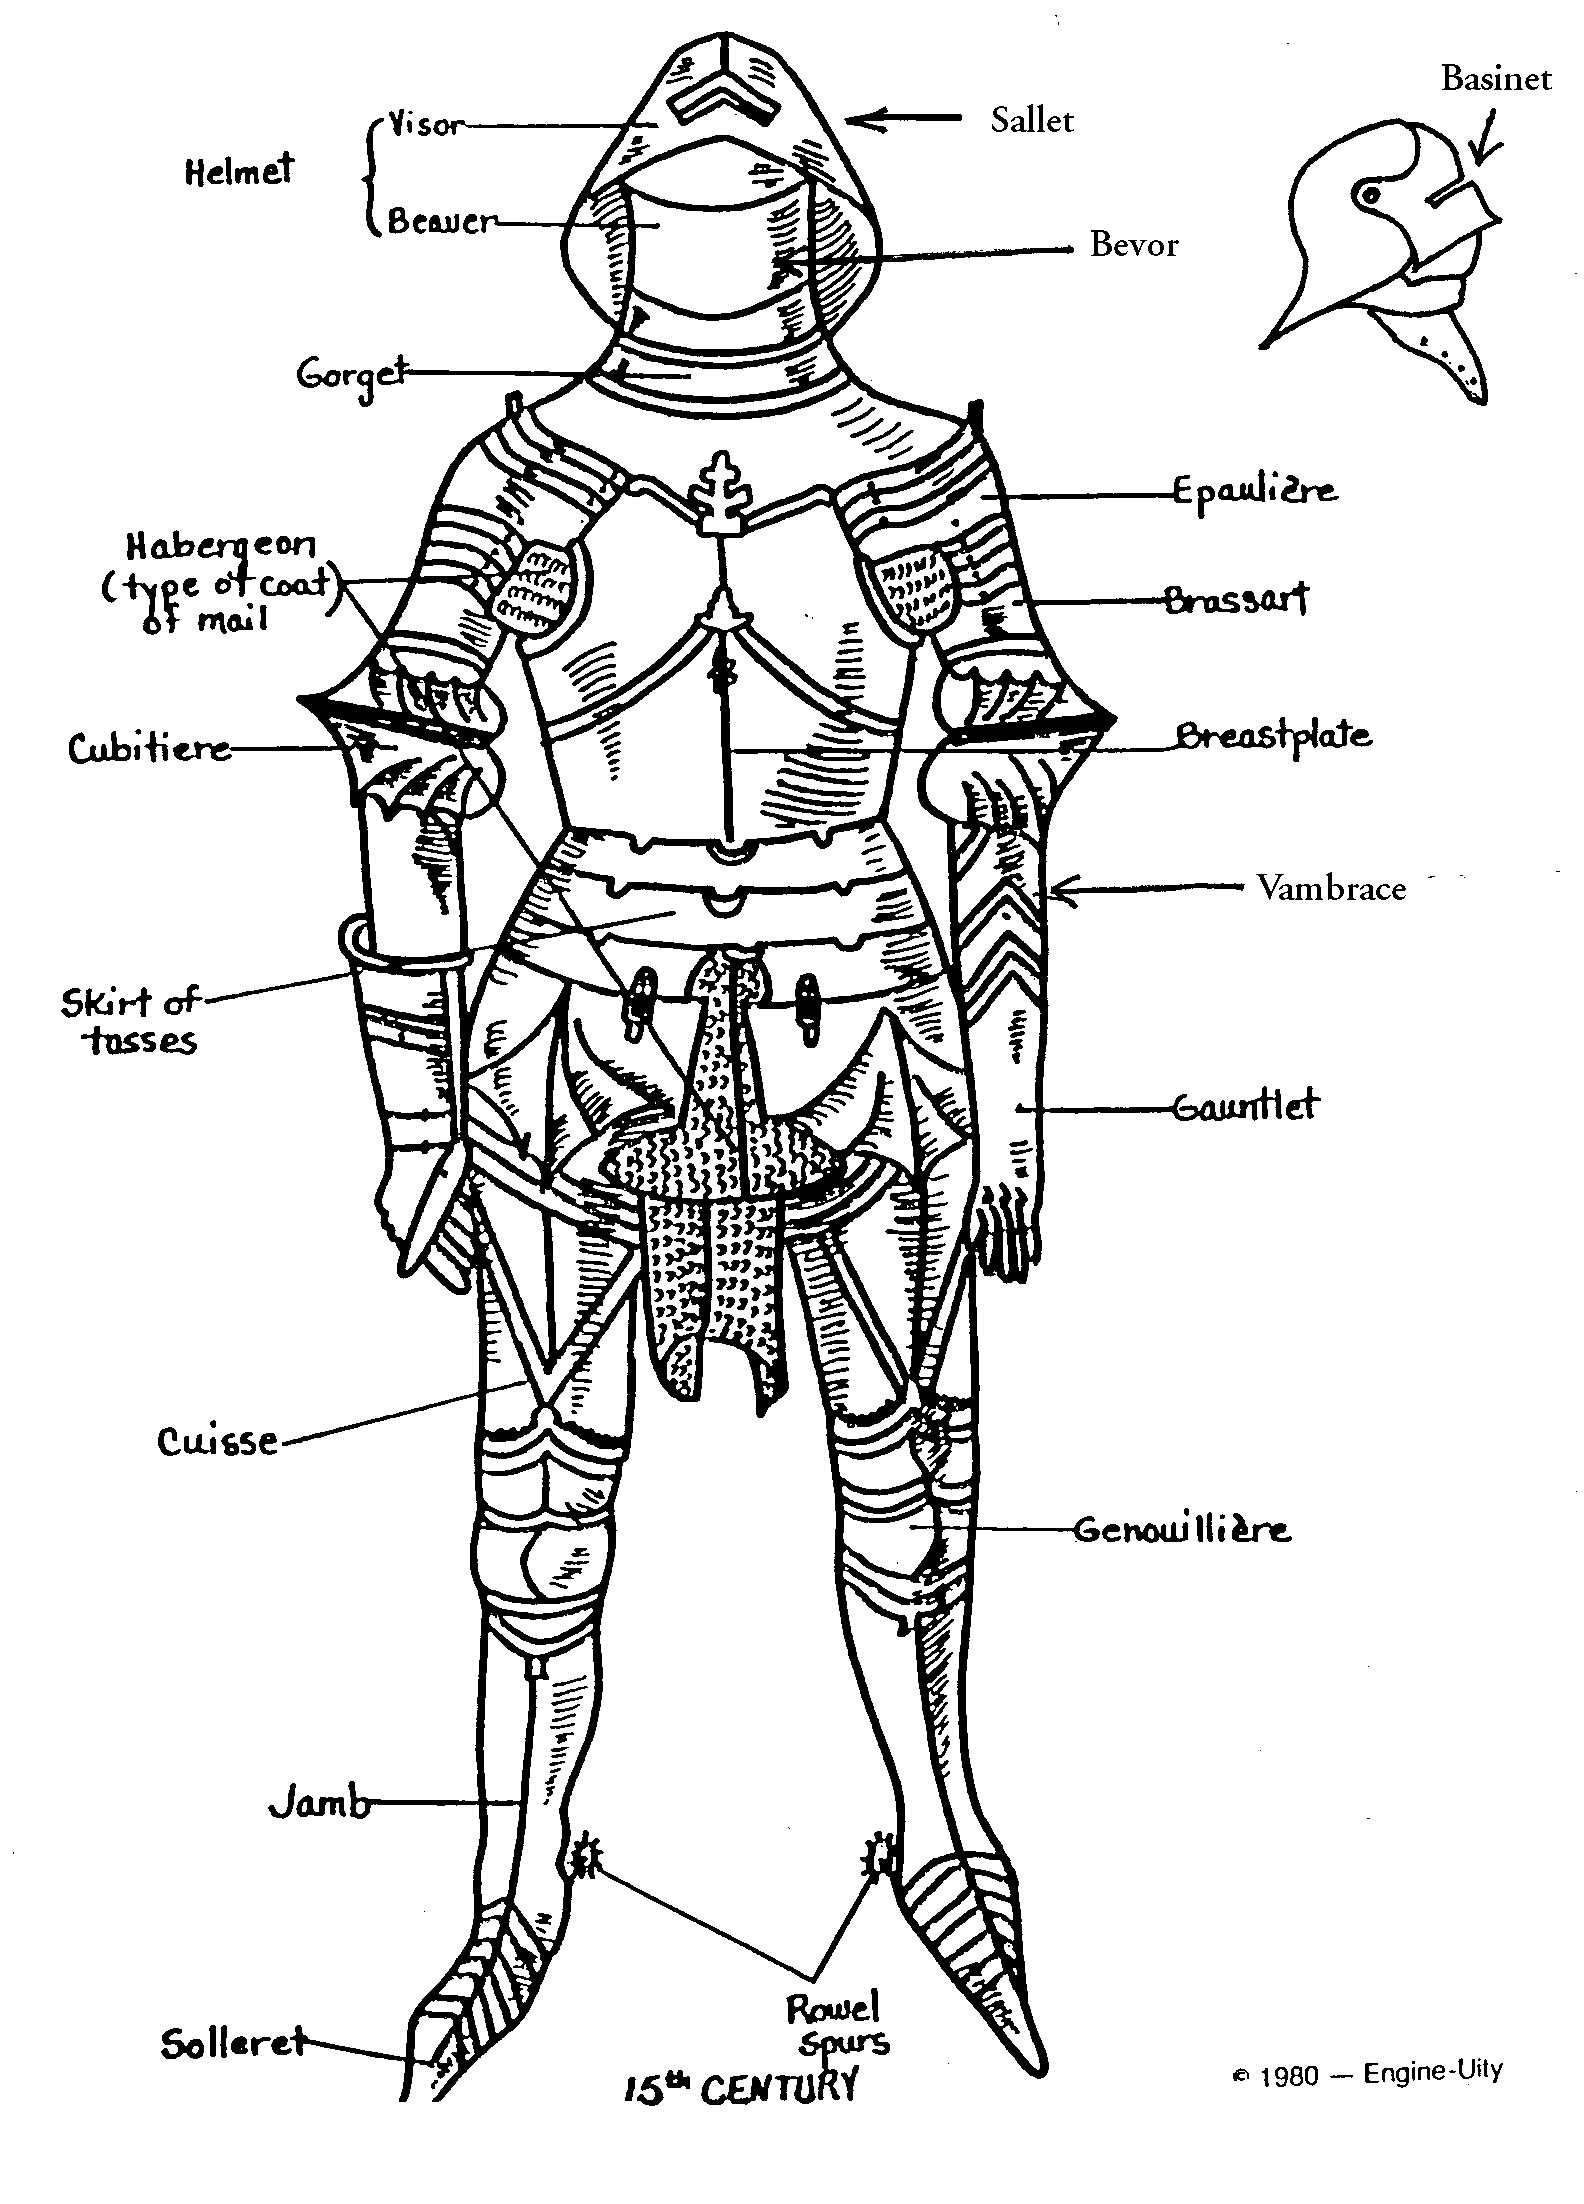 Me Val Armor And Weapons In The Later Middle Ages